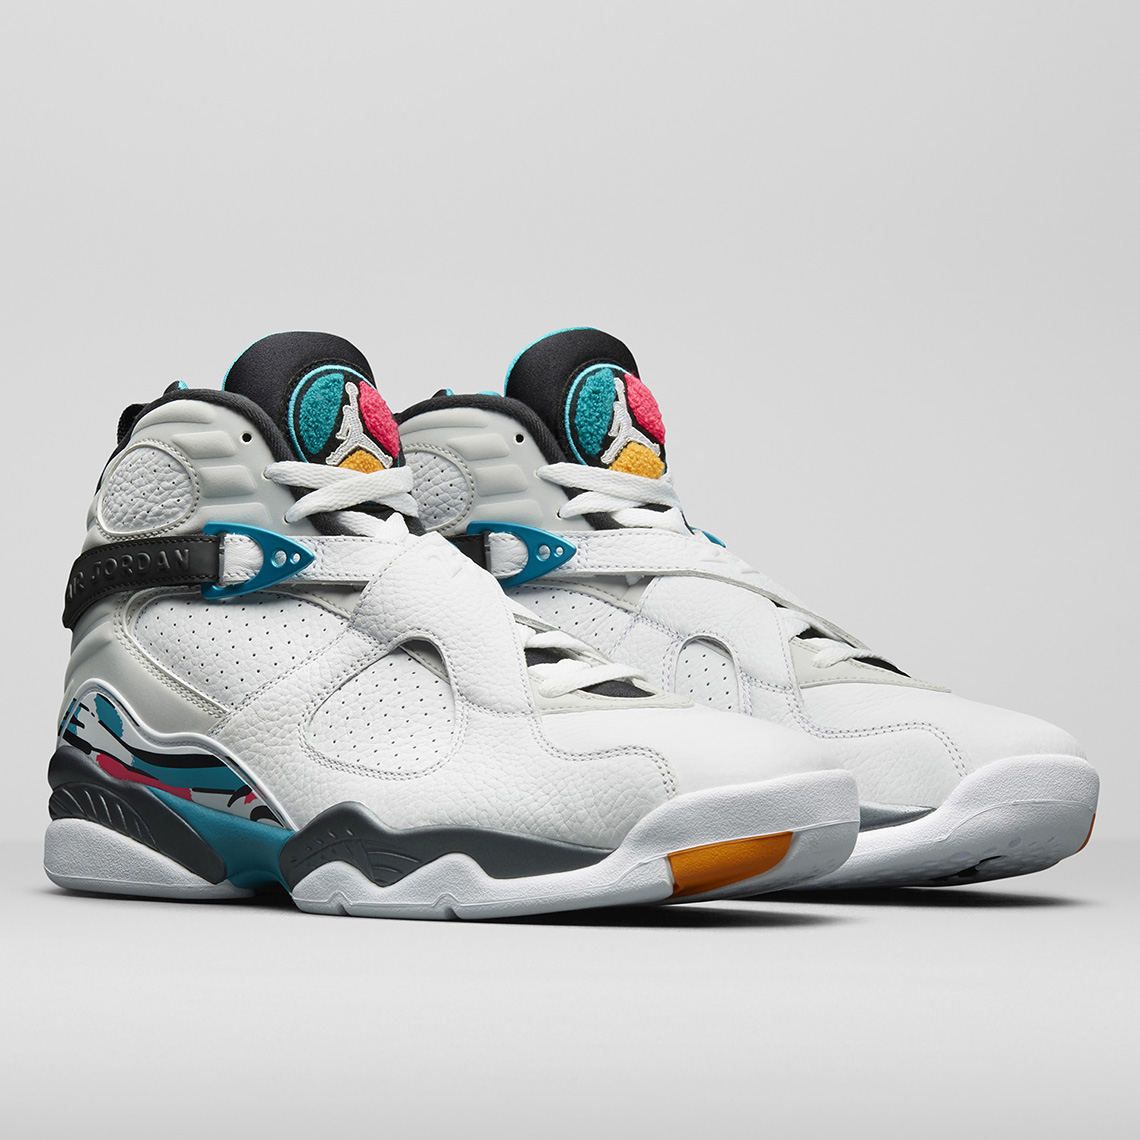 "dff6a483a2b Air Jordan 8 Retro ""South Beach"" Air Jordan 8 South Beach Store List  Release Date: October 13th, 2018 $190. Color: White/White-Turbo Green"